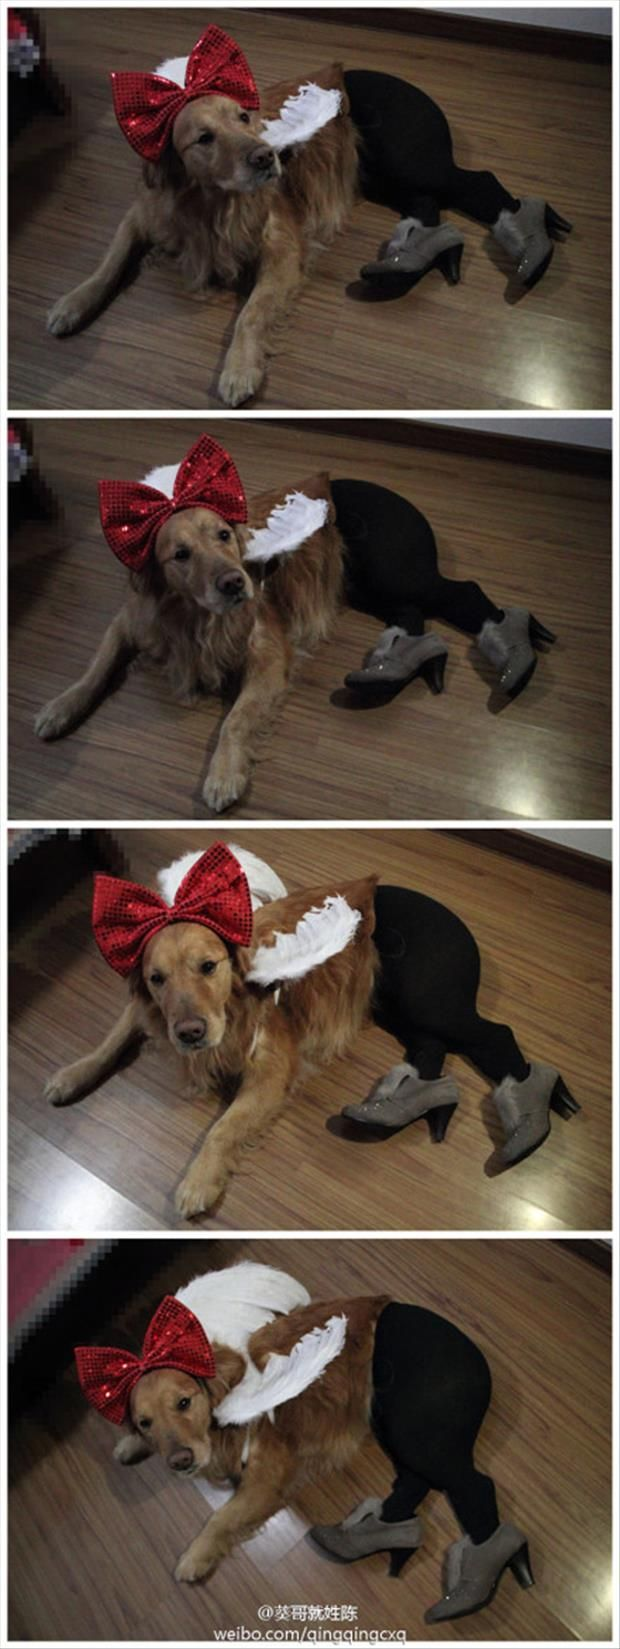 dogs wearing pantyhose meme (3)